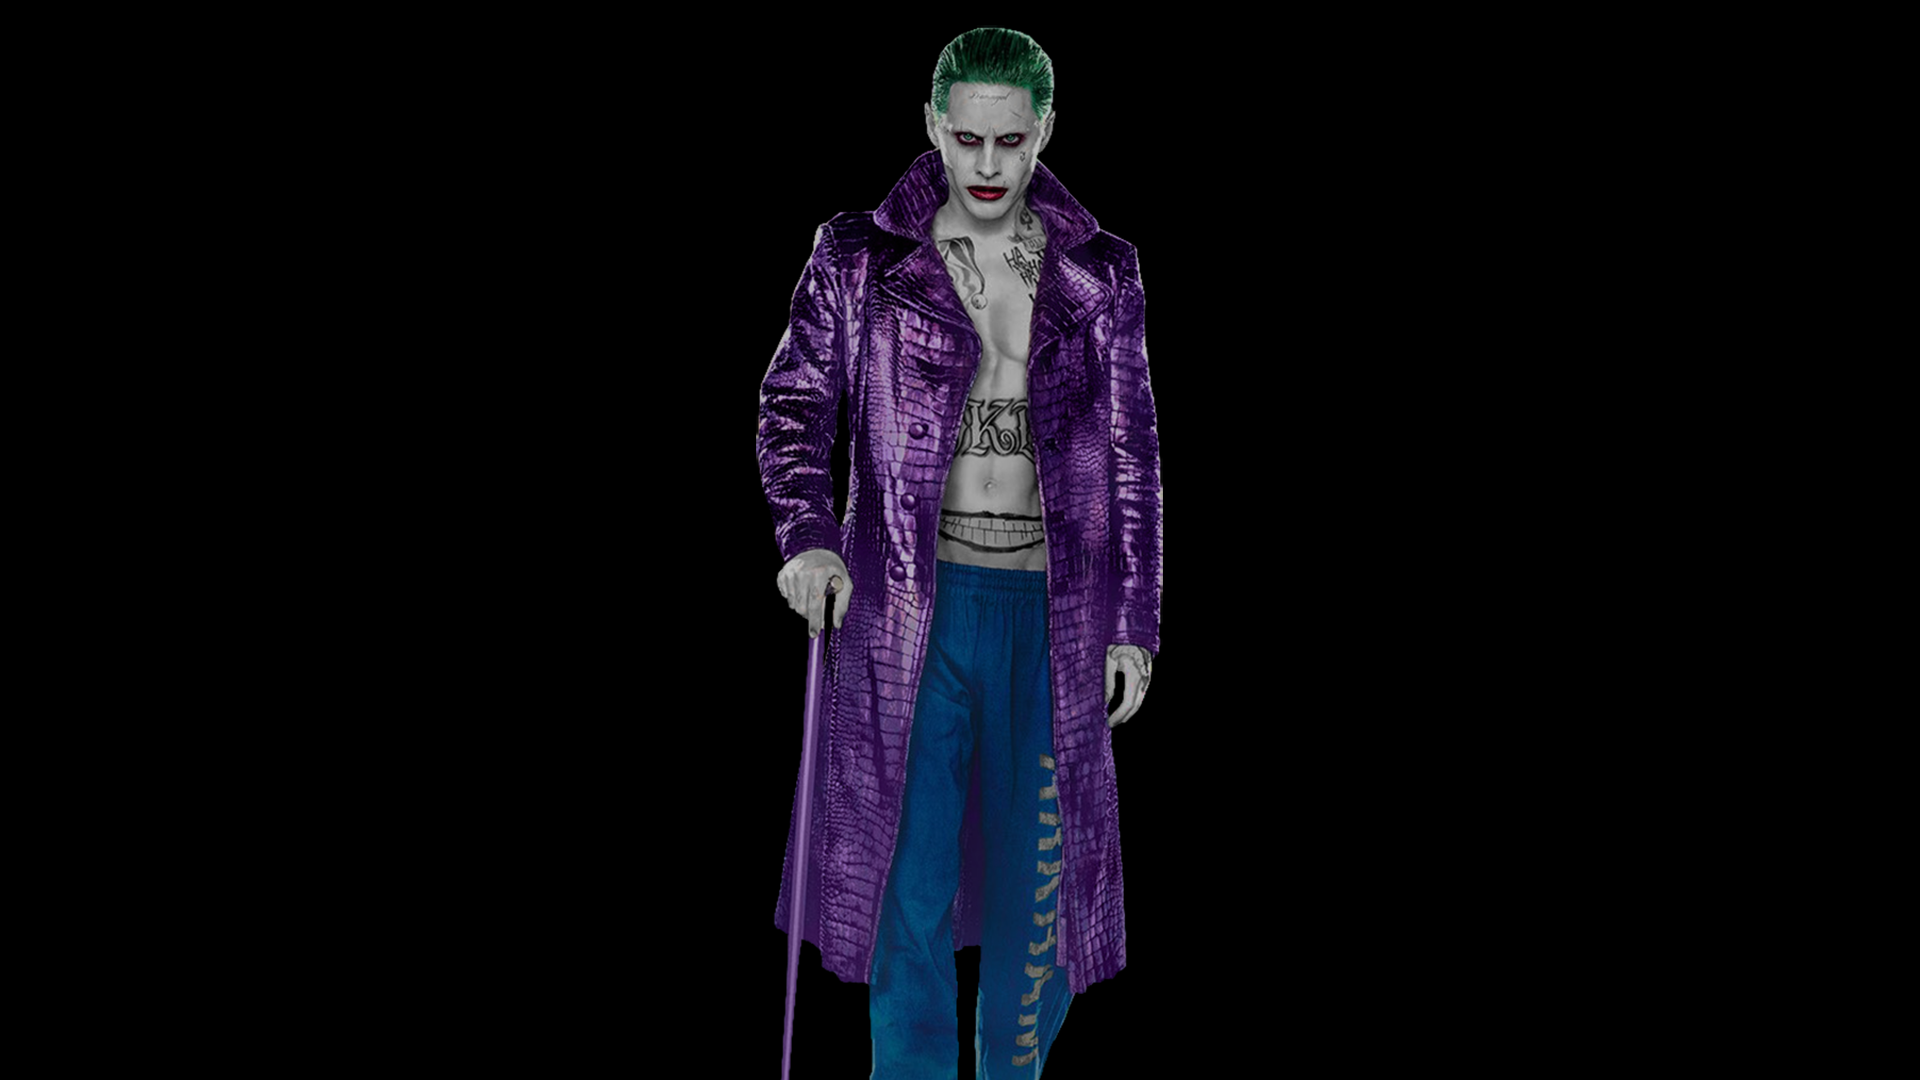 Joker suicide squad wallpapers images photos pictures for Immagini joker hd